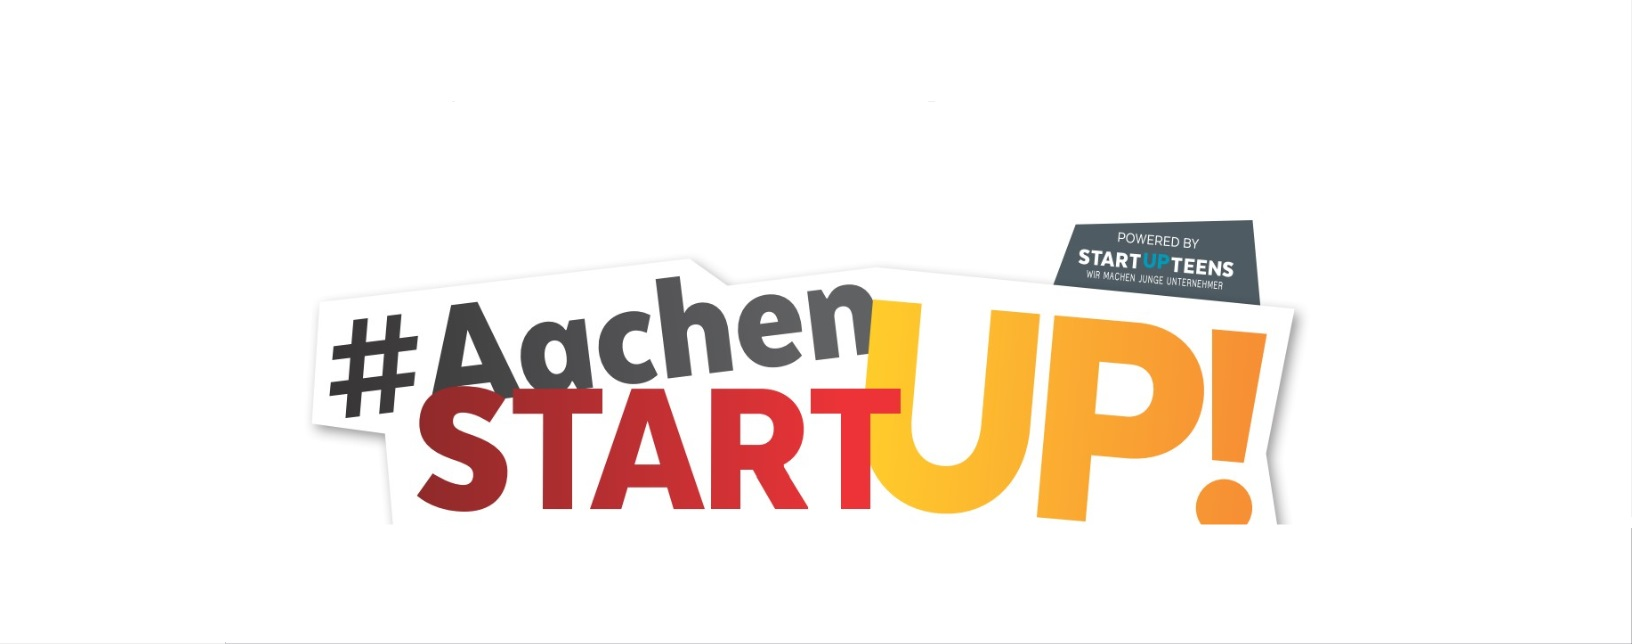 Aachen START UP TEENS